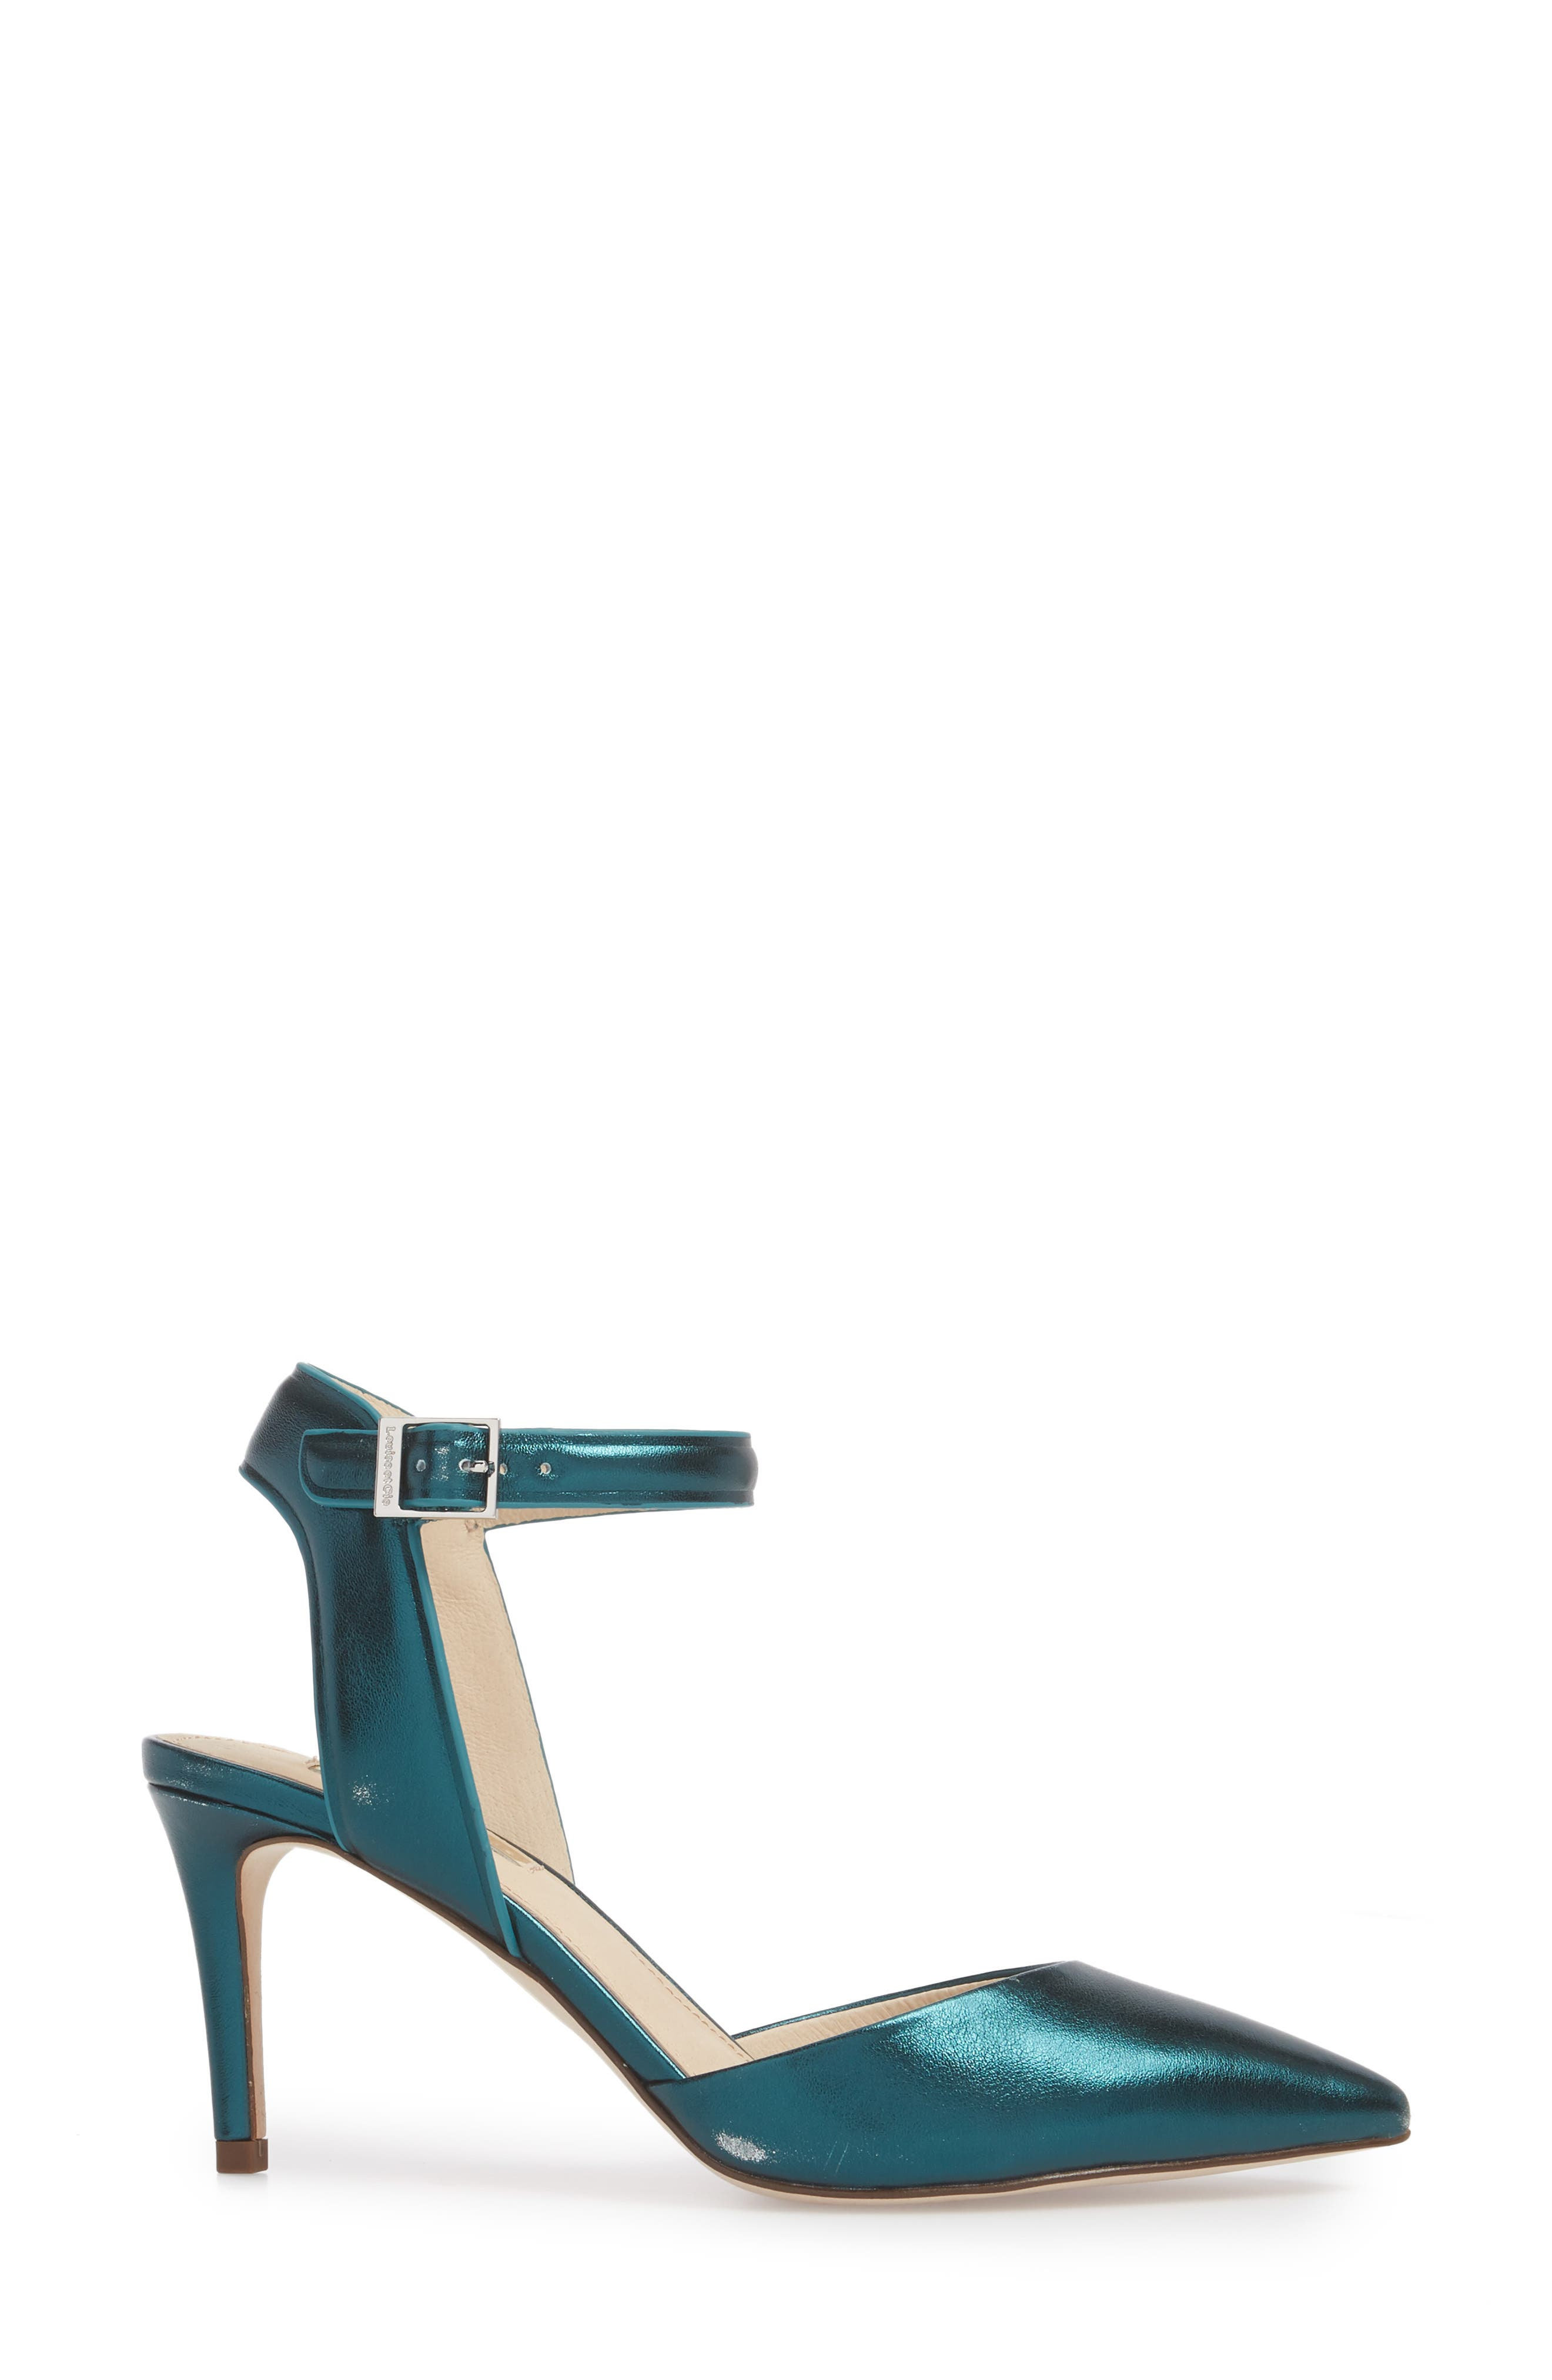 Kota Ankle Strap Pump,                             Alternate thumbnail 6, color,                             Teal Metallic Leather